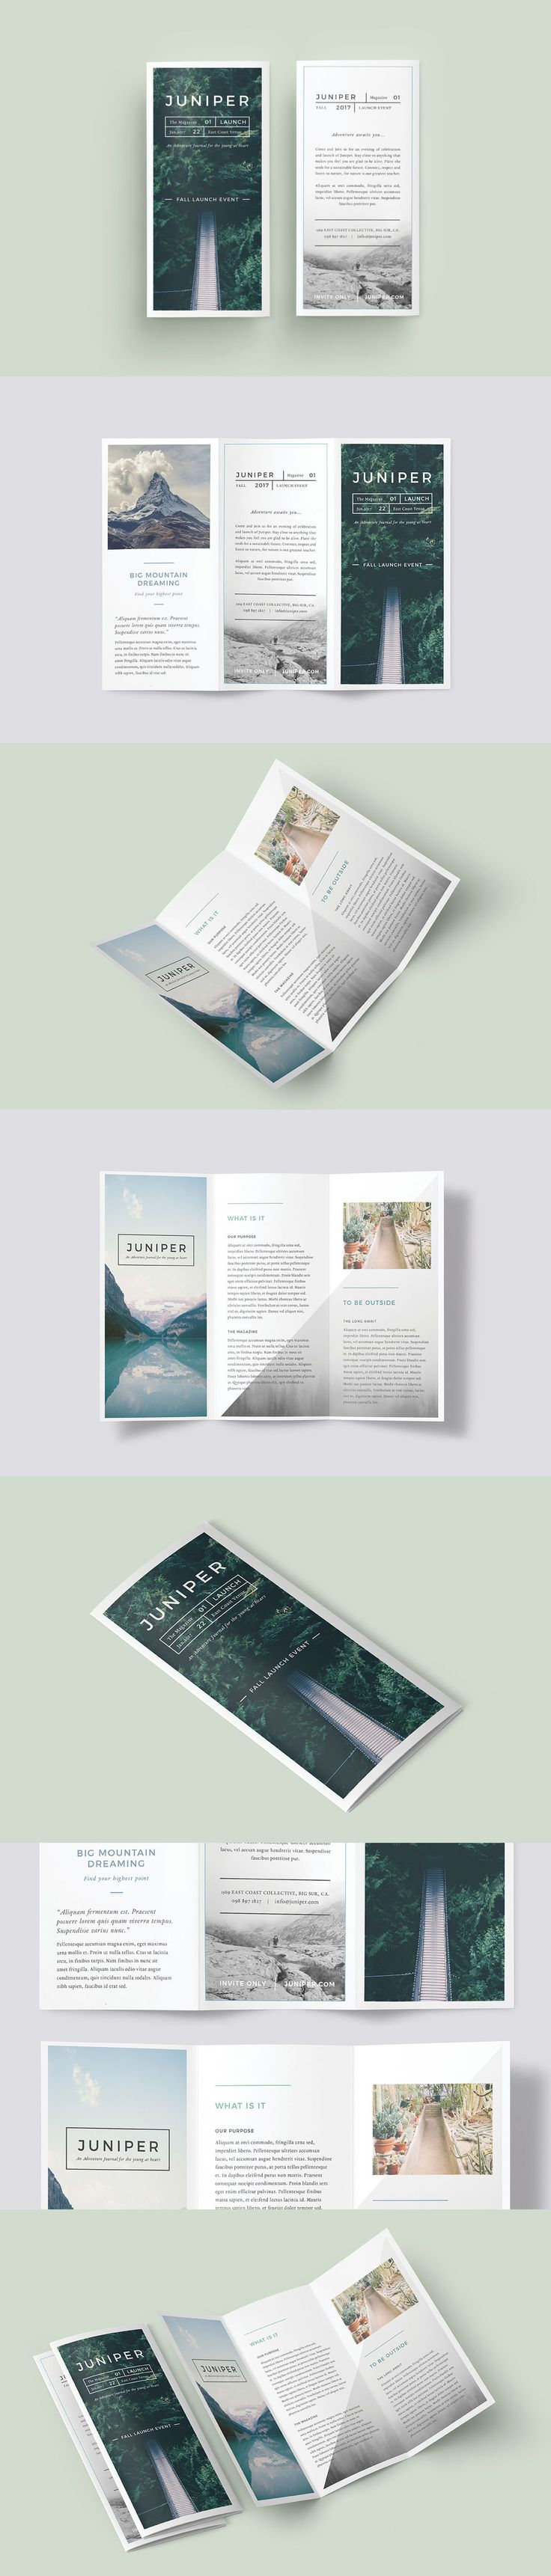 A Beautiful Multipurpose Tri-Fold DL Brochure Template InDesign INDD                                                                                                                                                                                 もっと見る